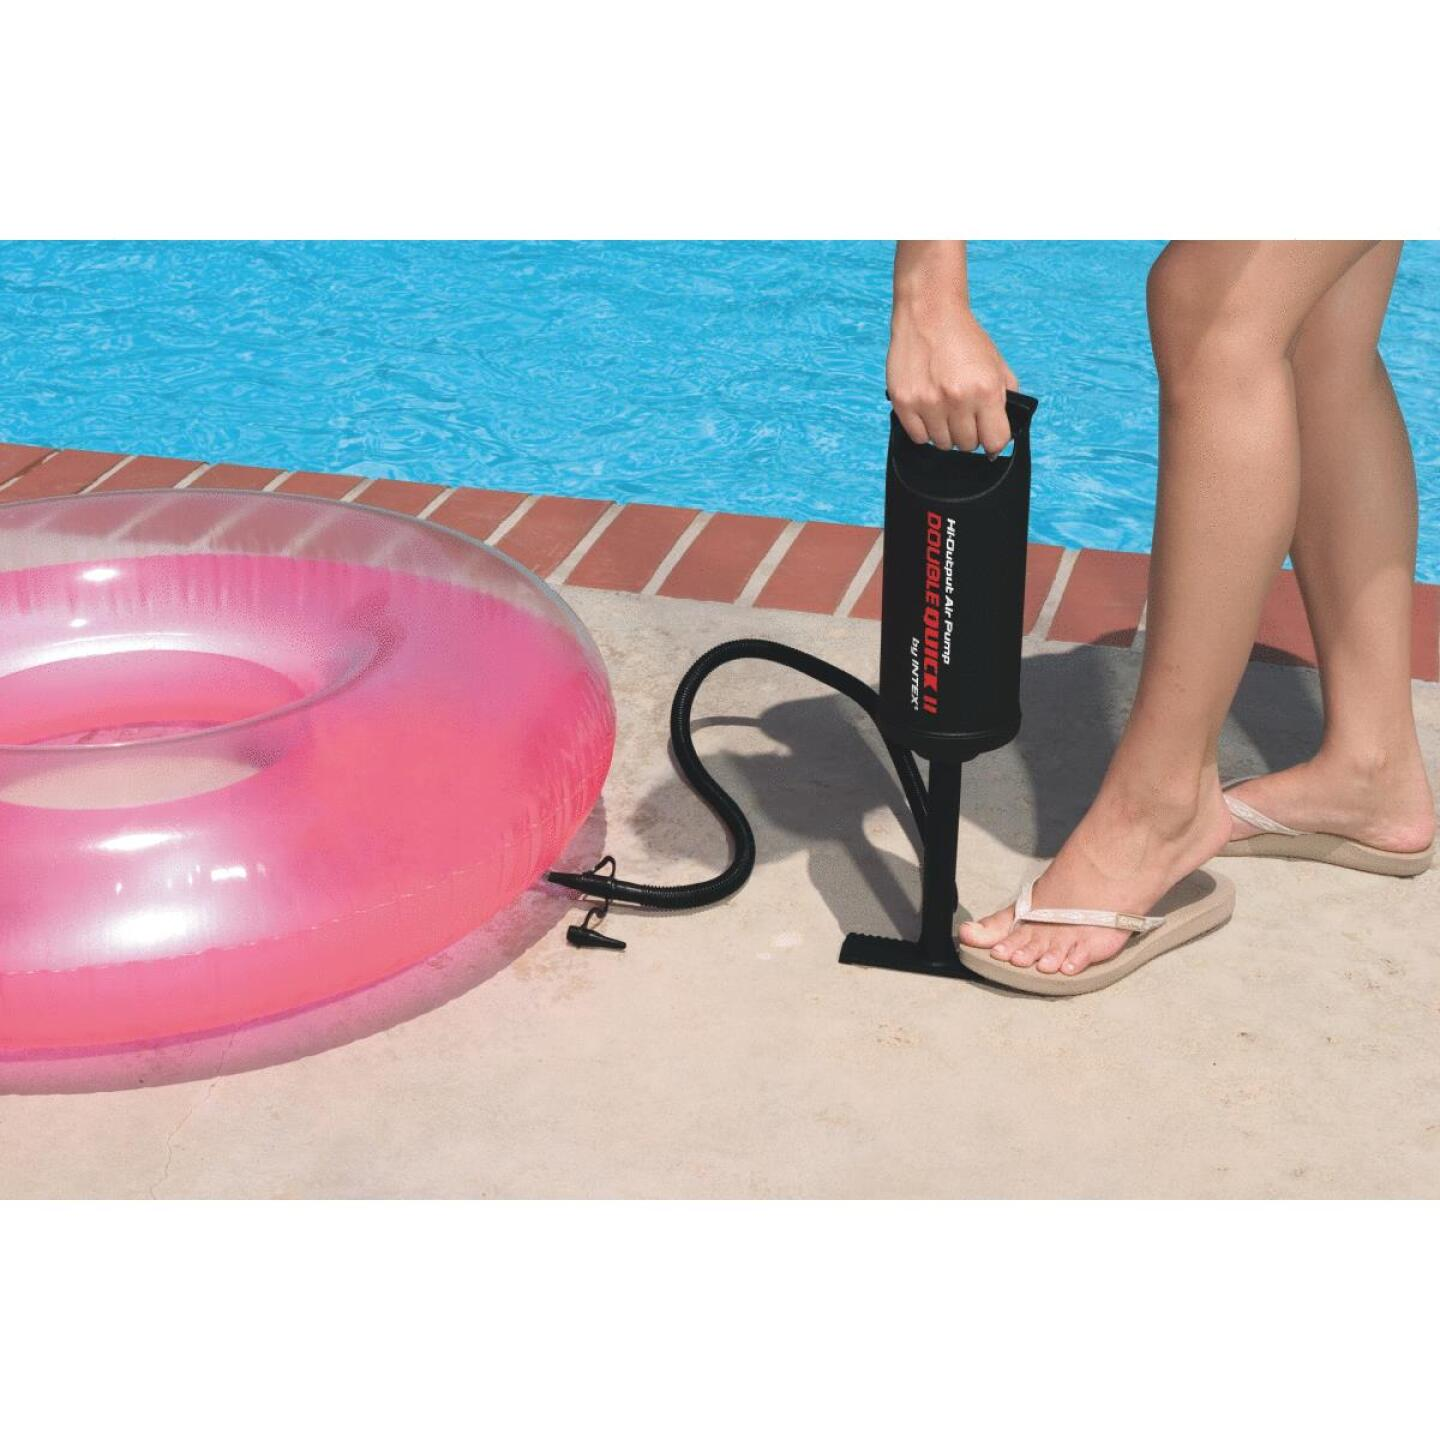 Intex High Output Air Hand Pump, 14 In., 3 Nozzles Included Image 2